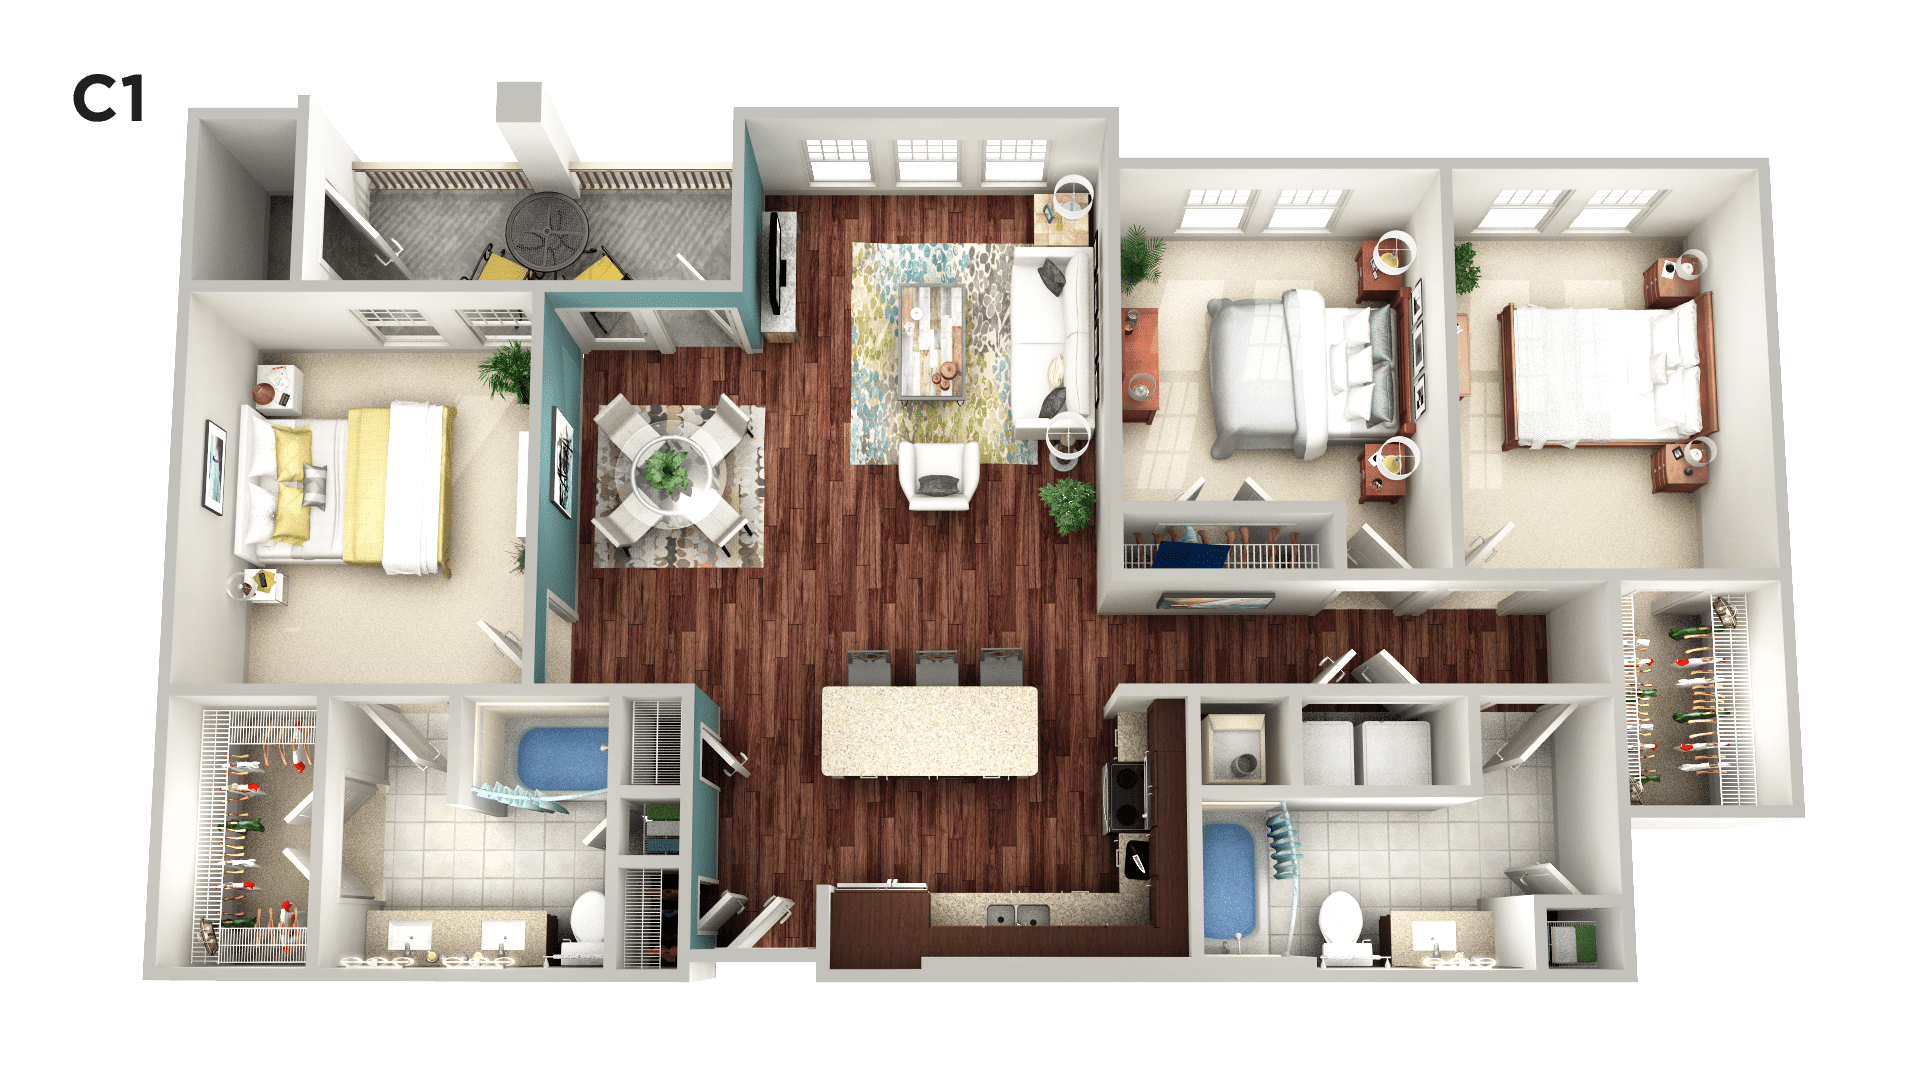 Luxury 1, 2 & 3 Bedroom Apartments in Grapevine, TX